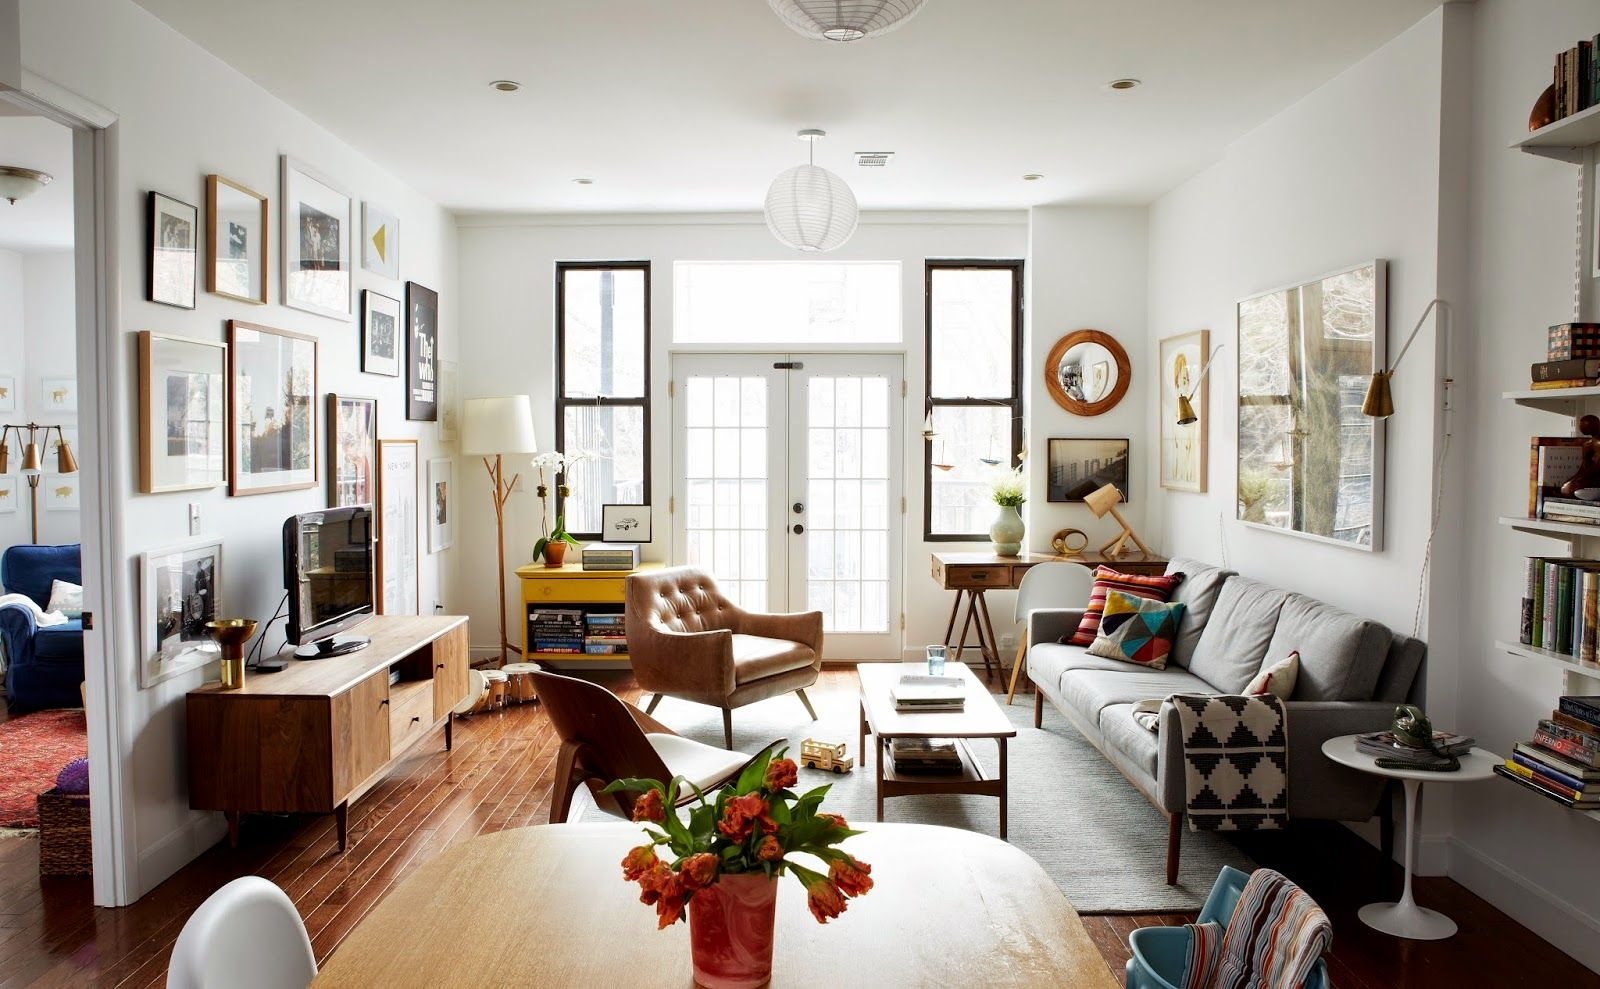 Our Brooklyn Apartment | Pinterest | Apartments, Cups and Living rooms